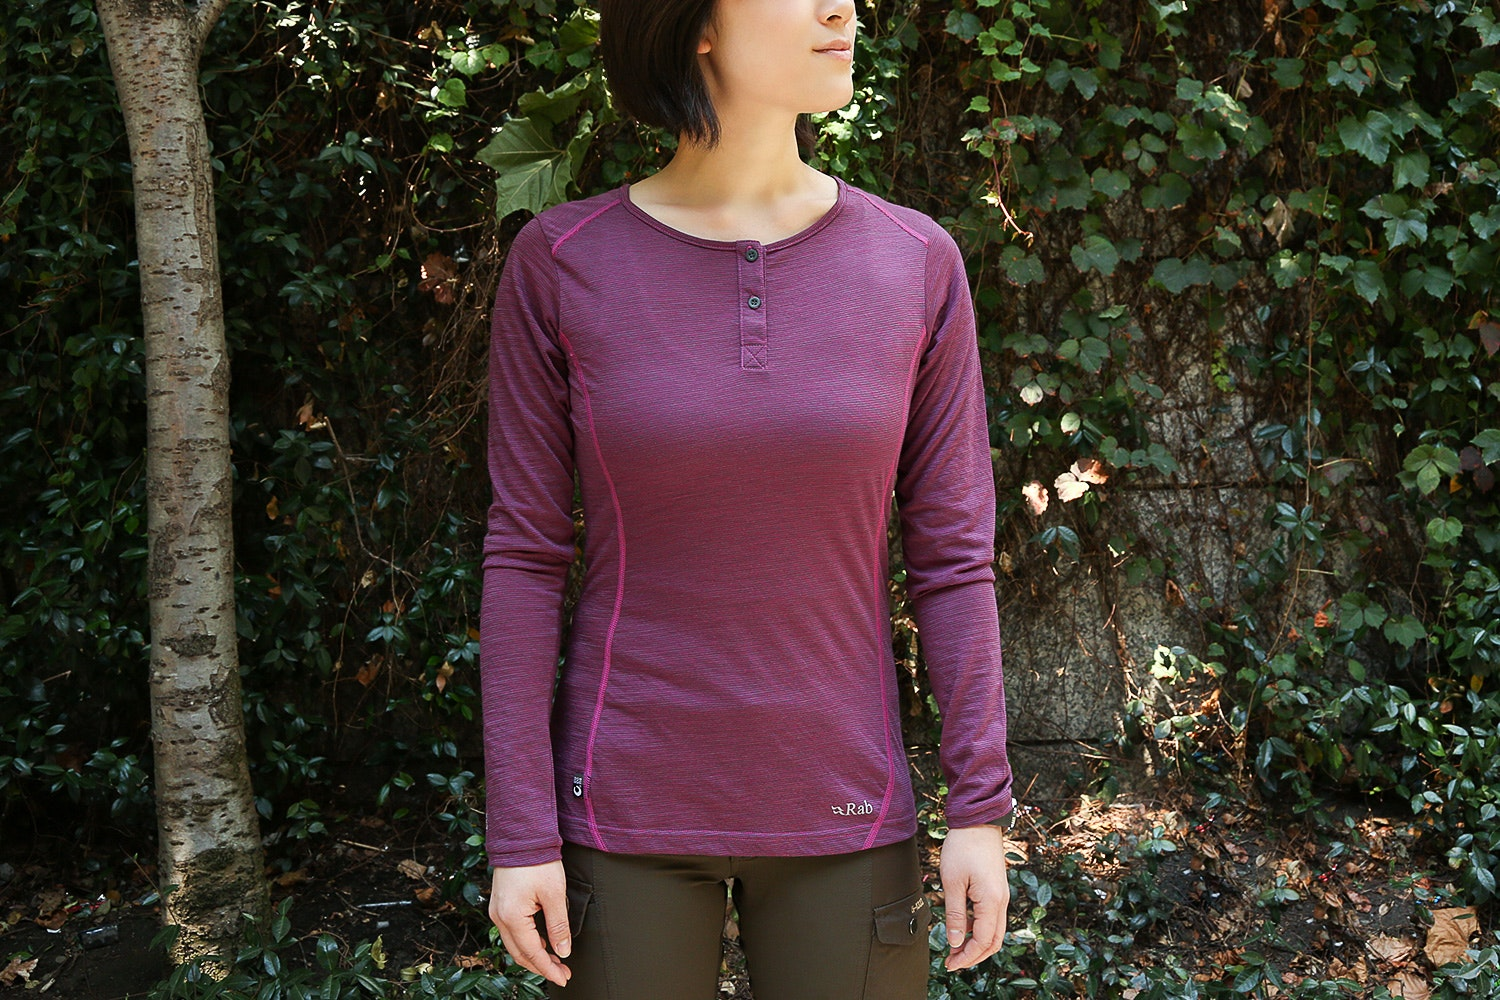 Rab MeCo Women's Closeout